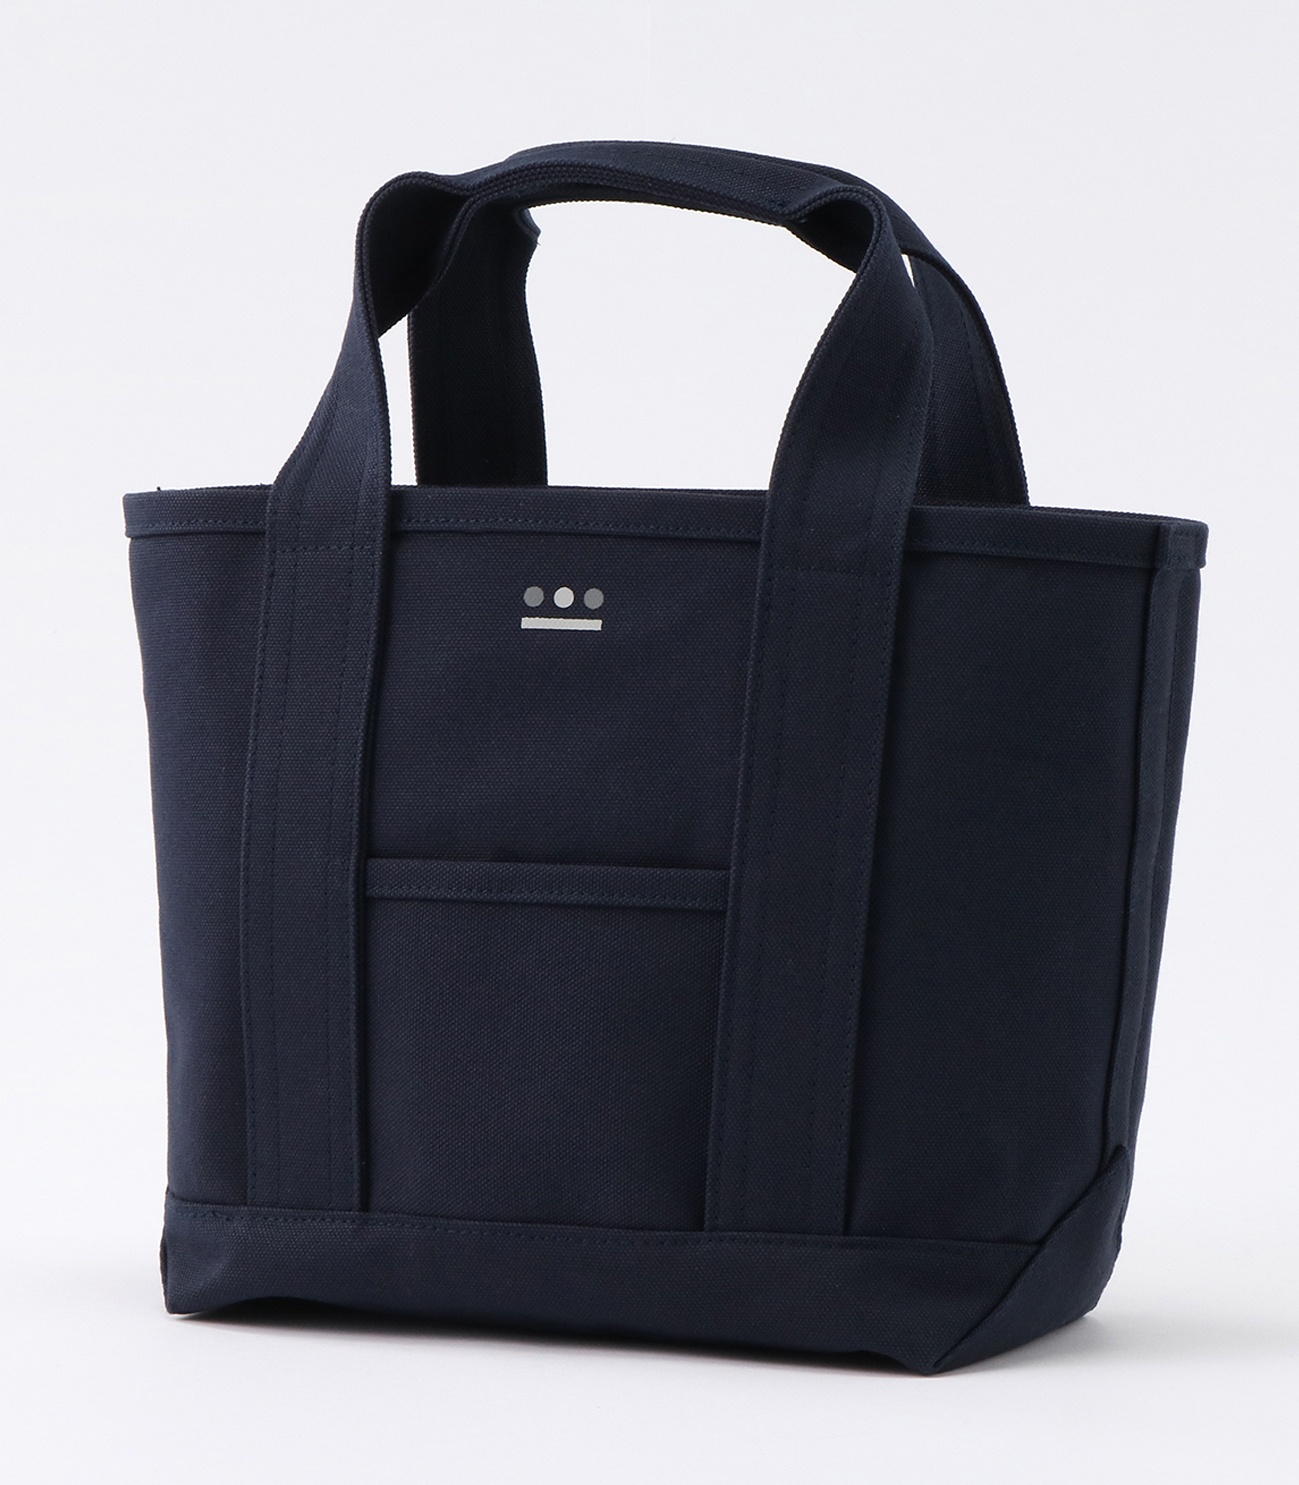 mini tote bag 詳細画像 navy 1